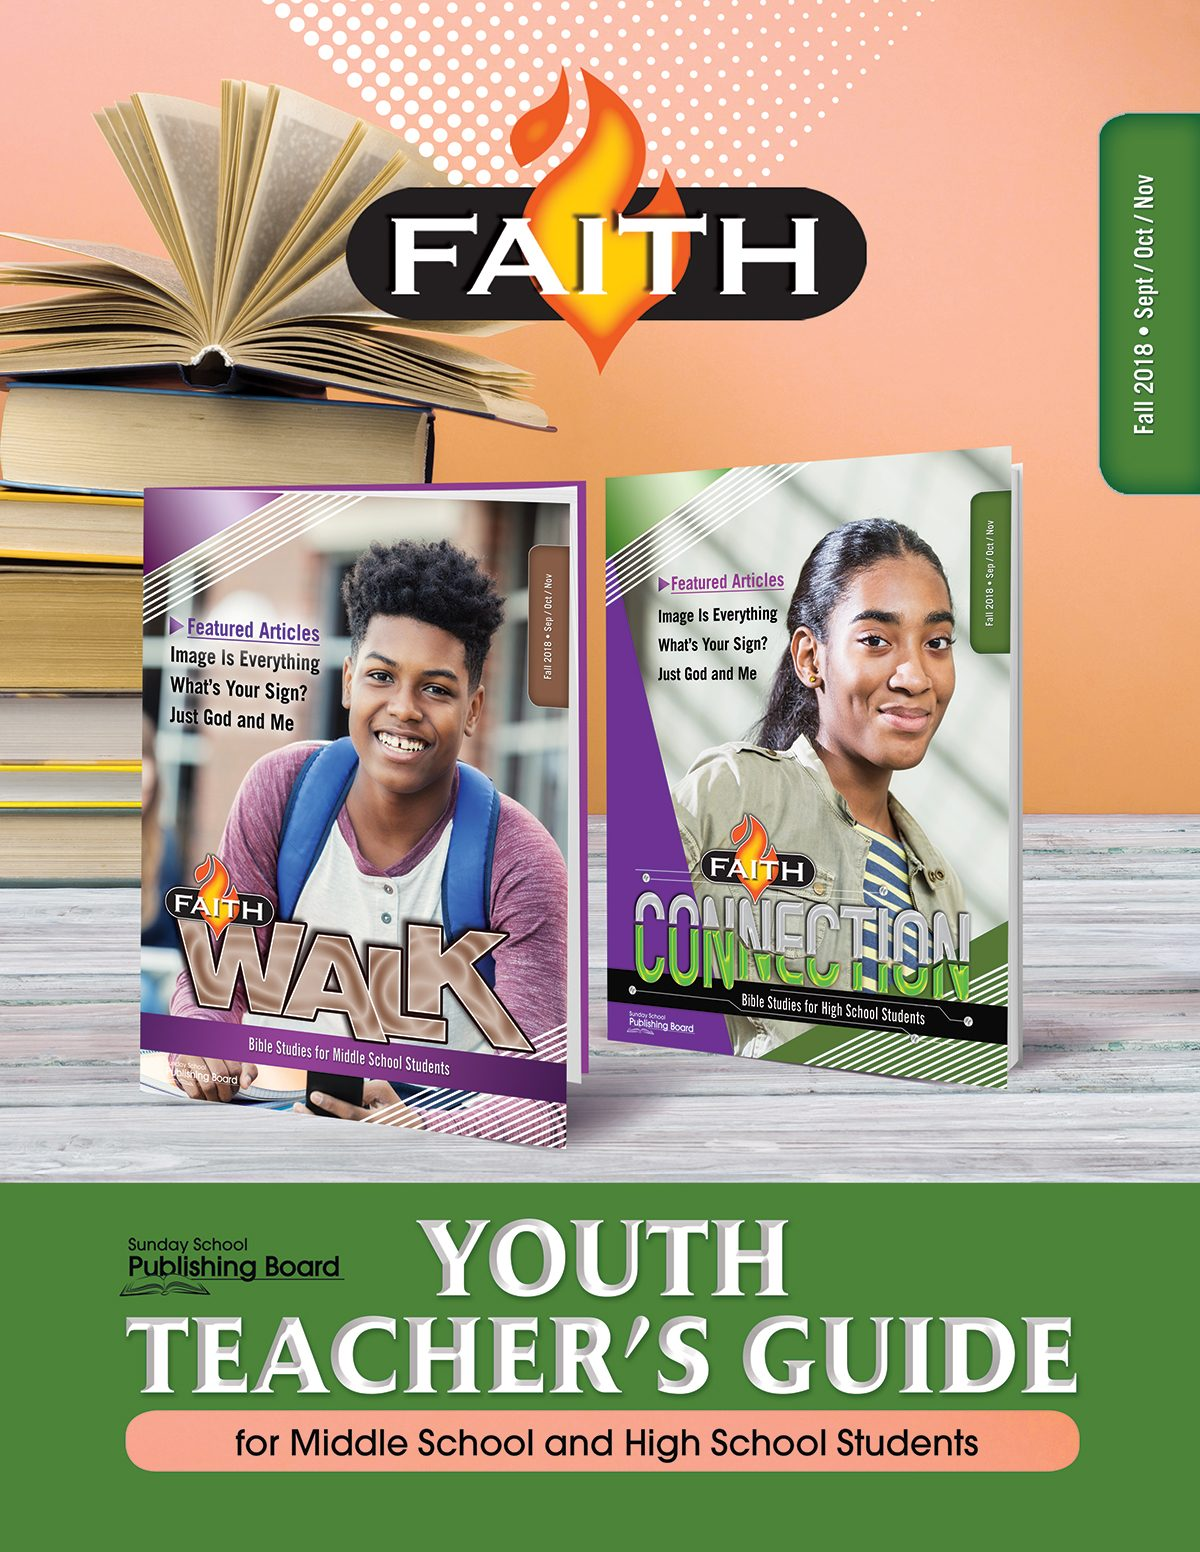 Faith Series Youth Teacher's Guide: For Middle School and High School Students (Fall 2018)–Digital Edition